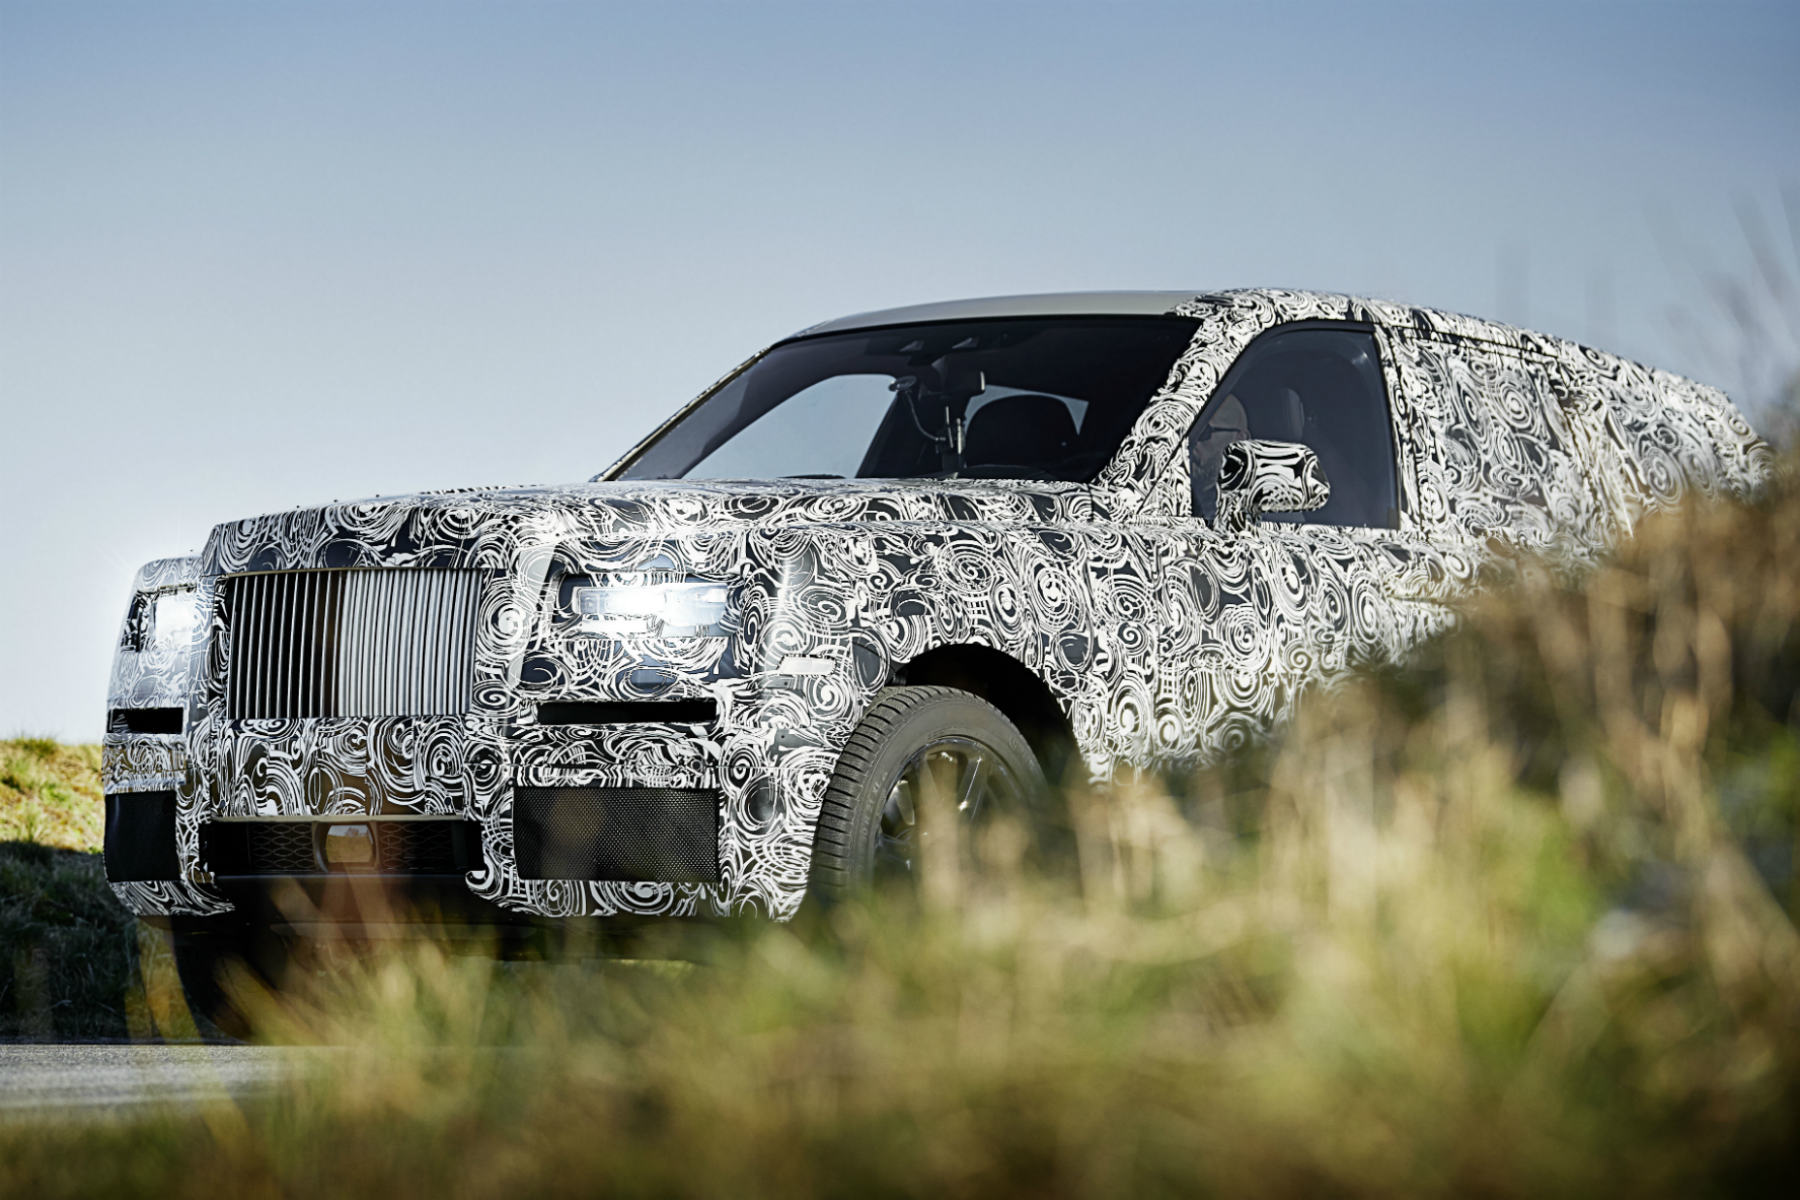 Rolls-Royce teases 2018 'Project Cullinan' SUV